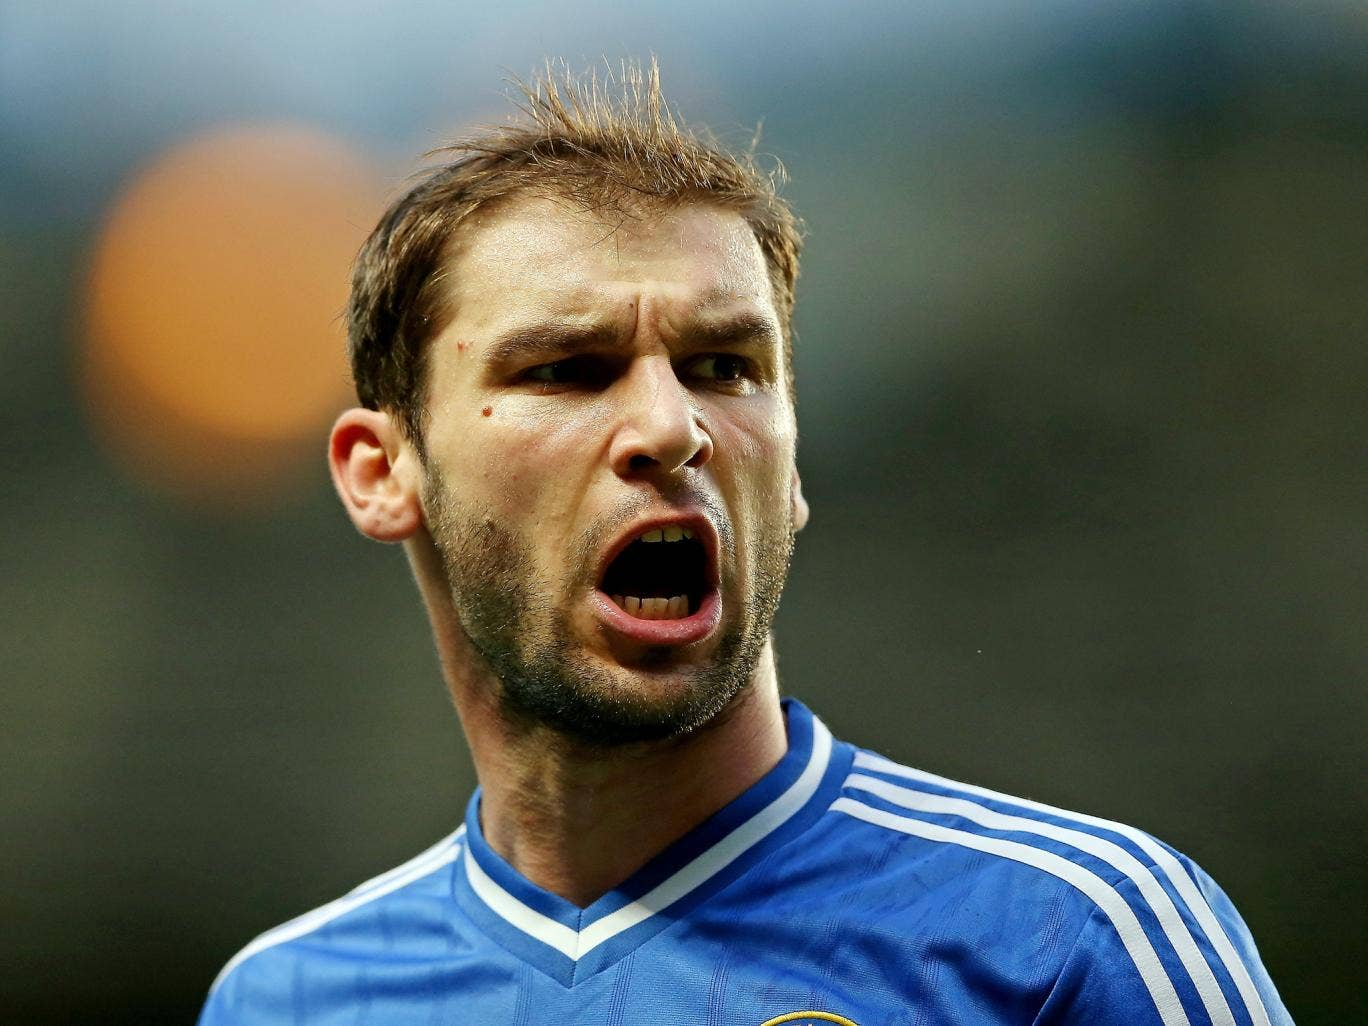 Branislav Ivanovic has expressed the importance of Chelsea's Premier League encounter with Liverpool which could be a deciding match in the hunt for the title